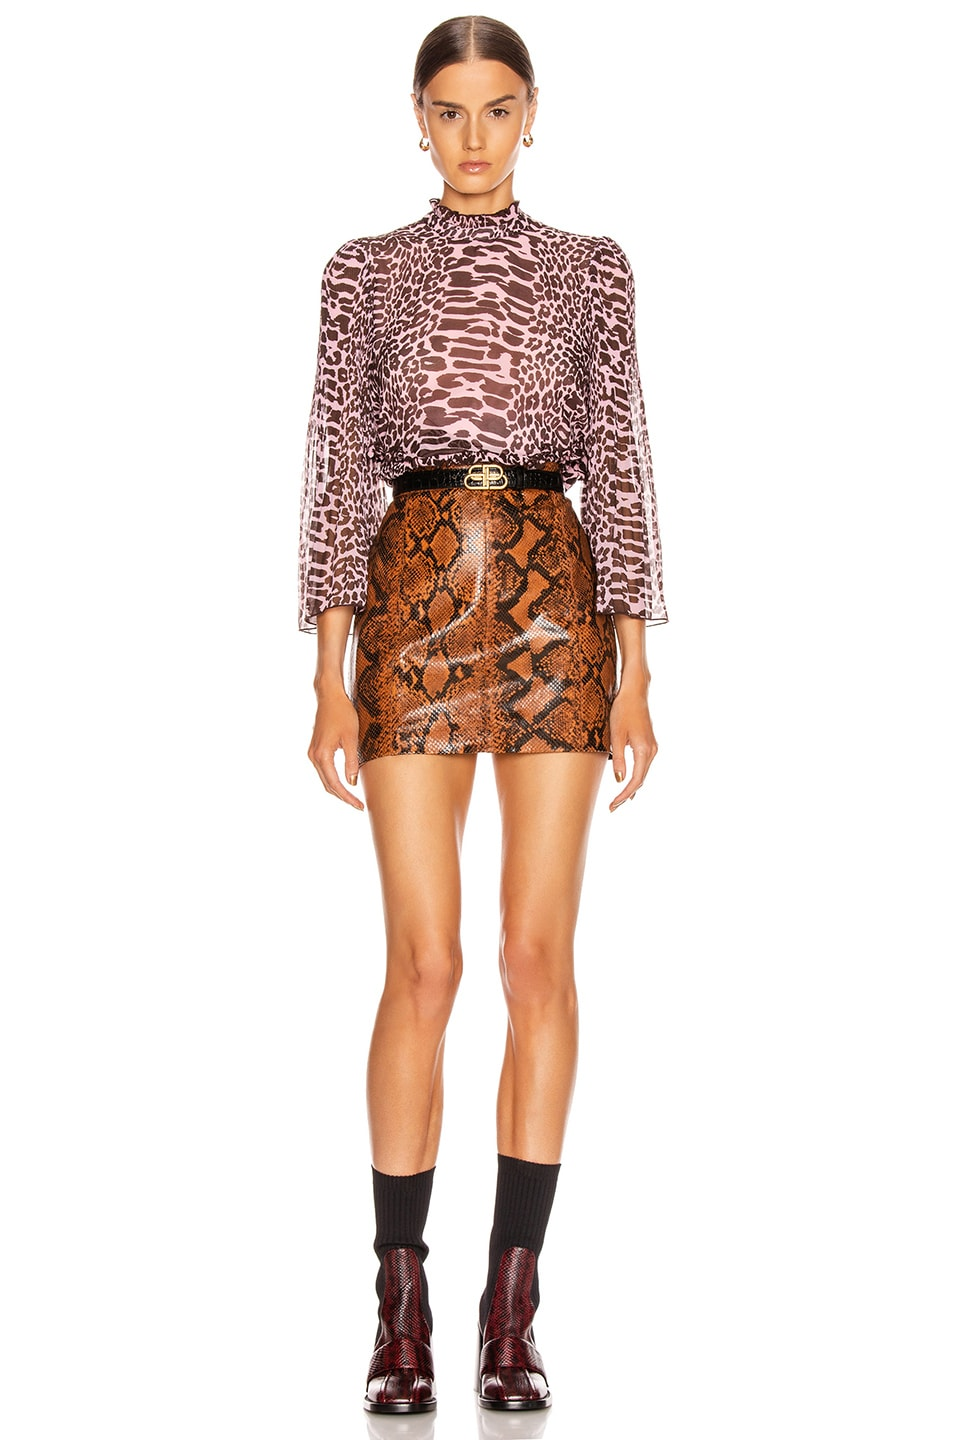 Image 5 of Ganni Pleated Georgette Top in Candy Pink and Dark Brown Leopard